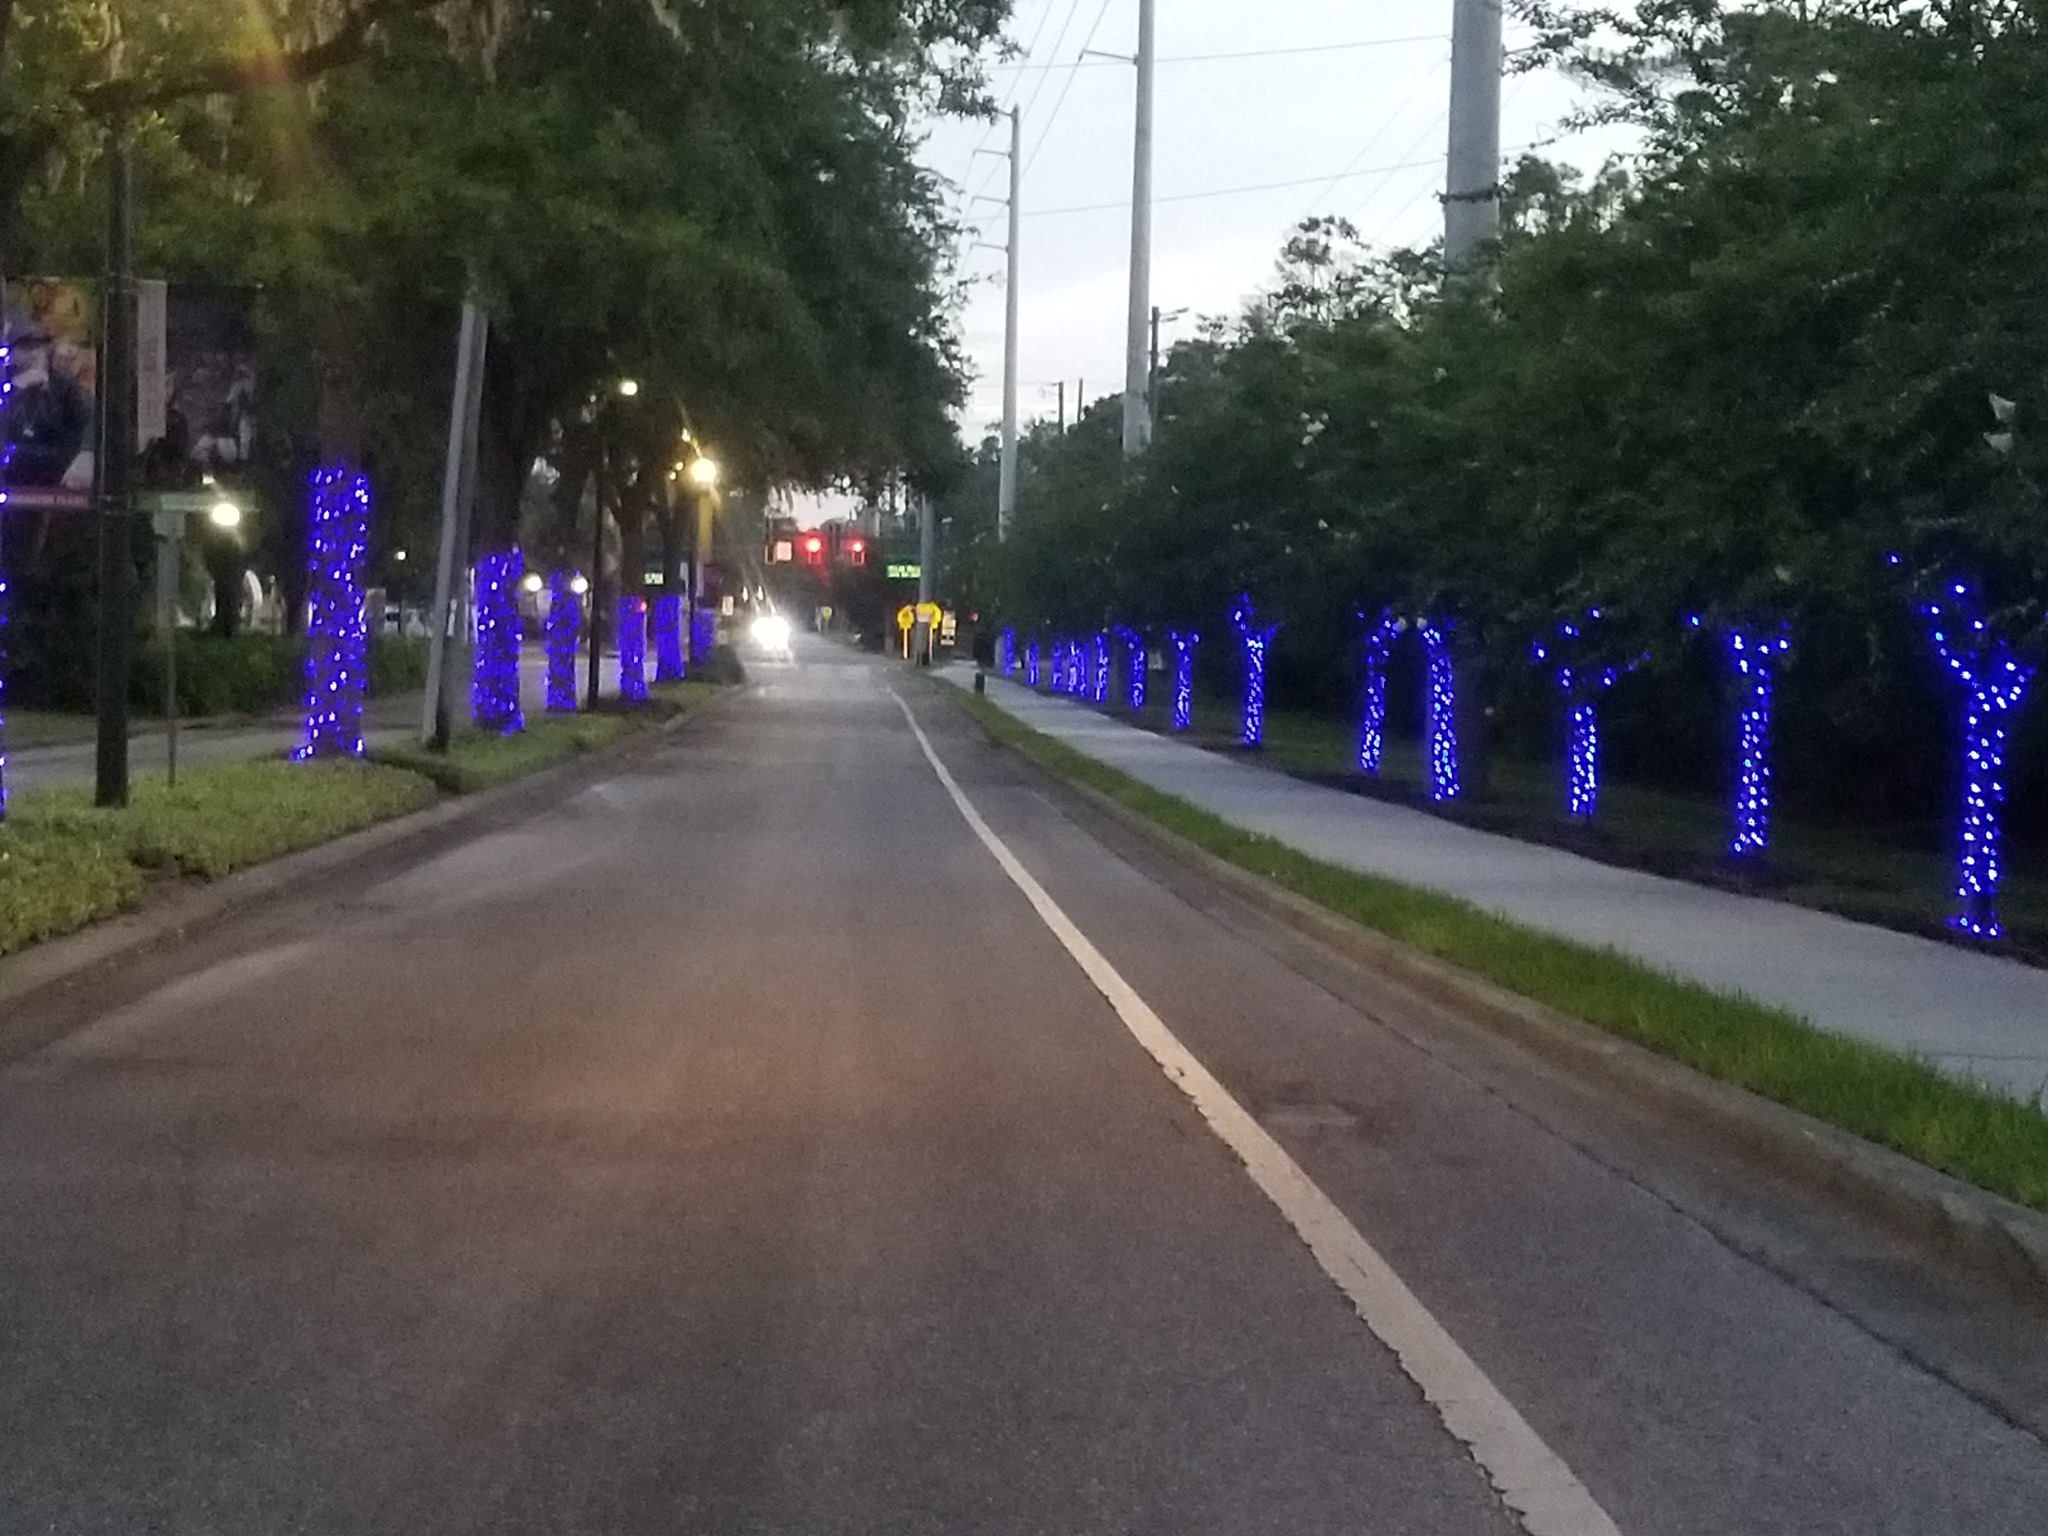 City-of-Largo-Police-Department-Lit-up-Blue-for-Paint-the-Twon-Blue-2021-FBITCAAA-PIc-2-of-4